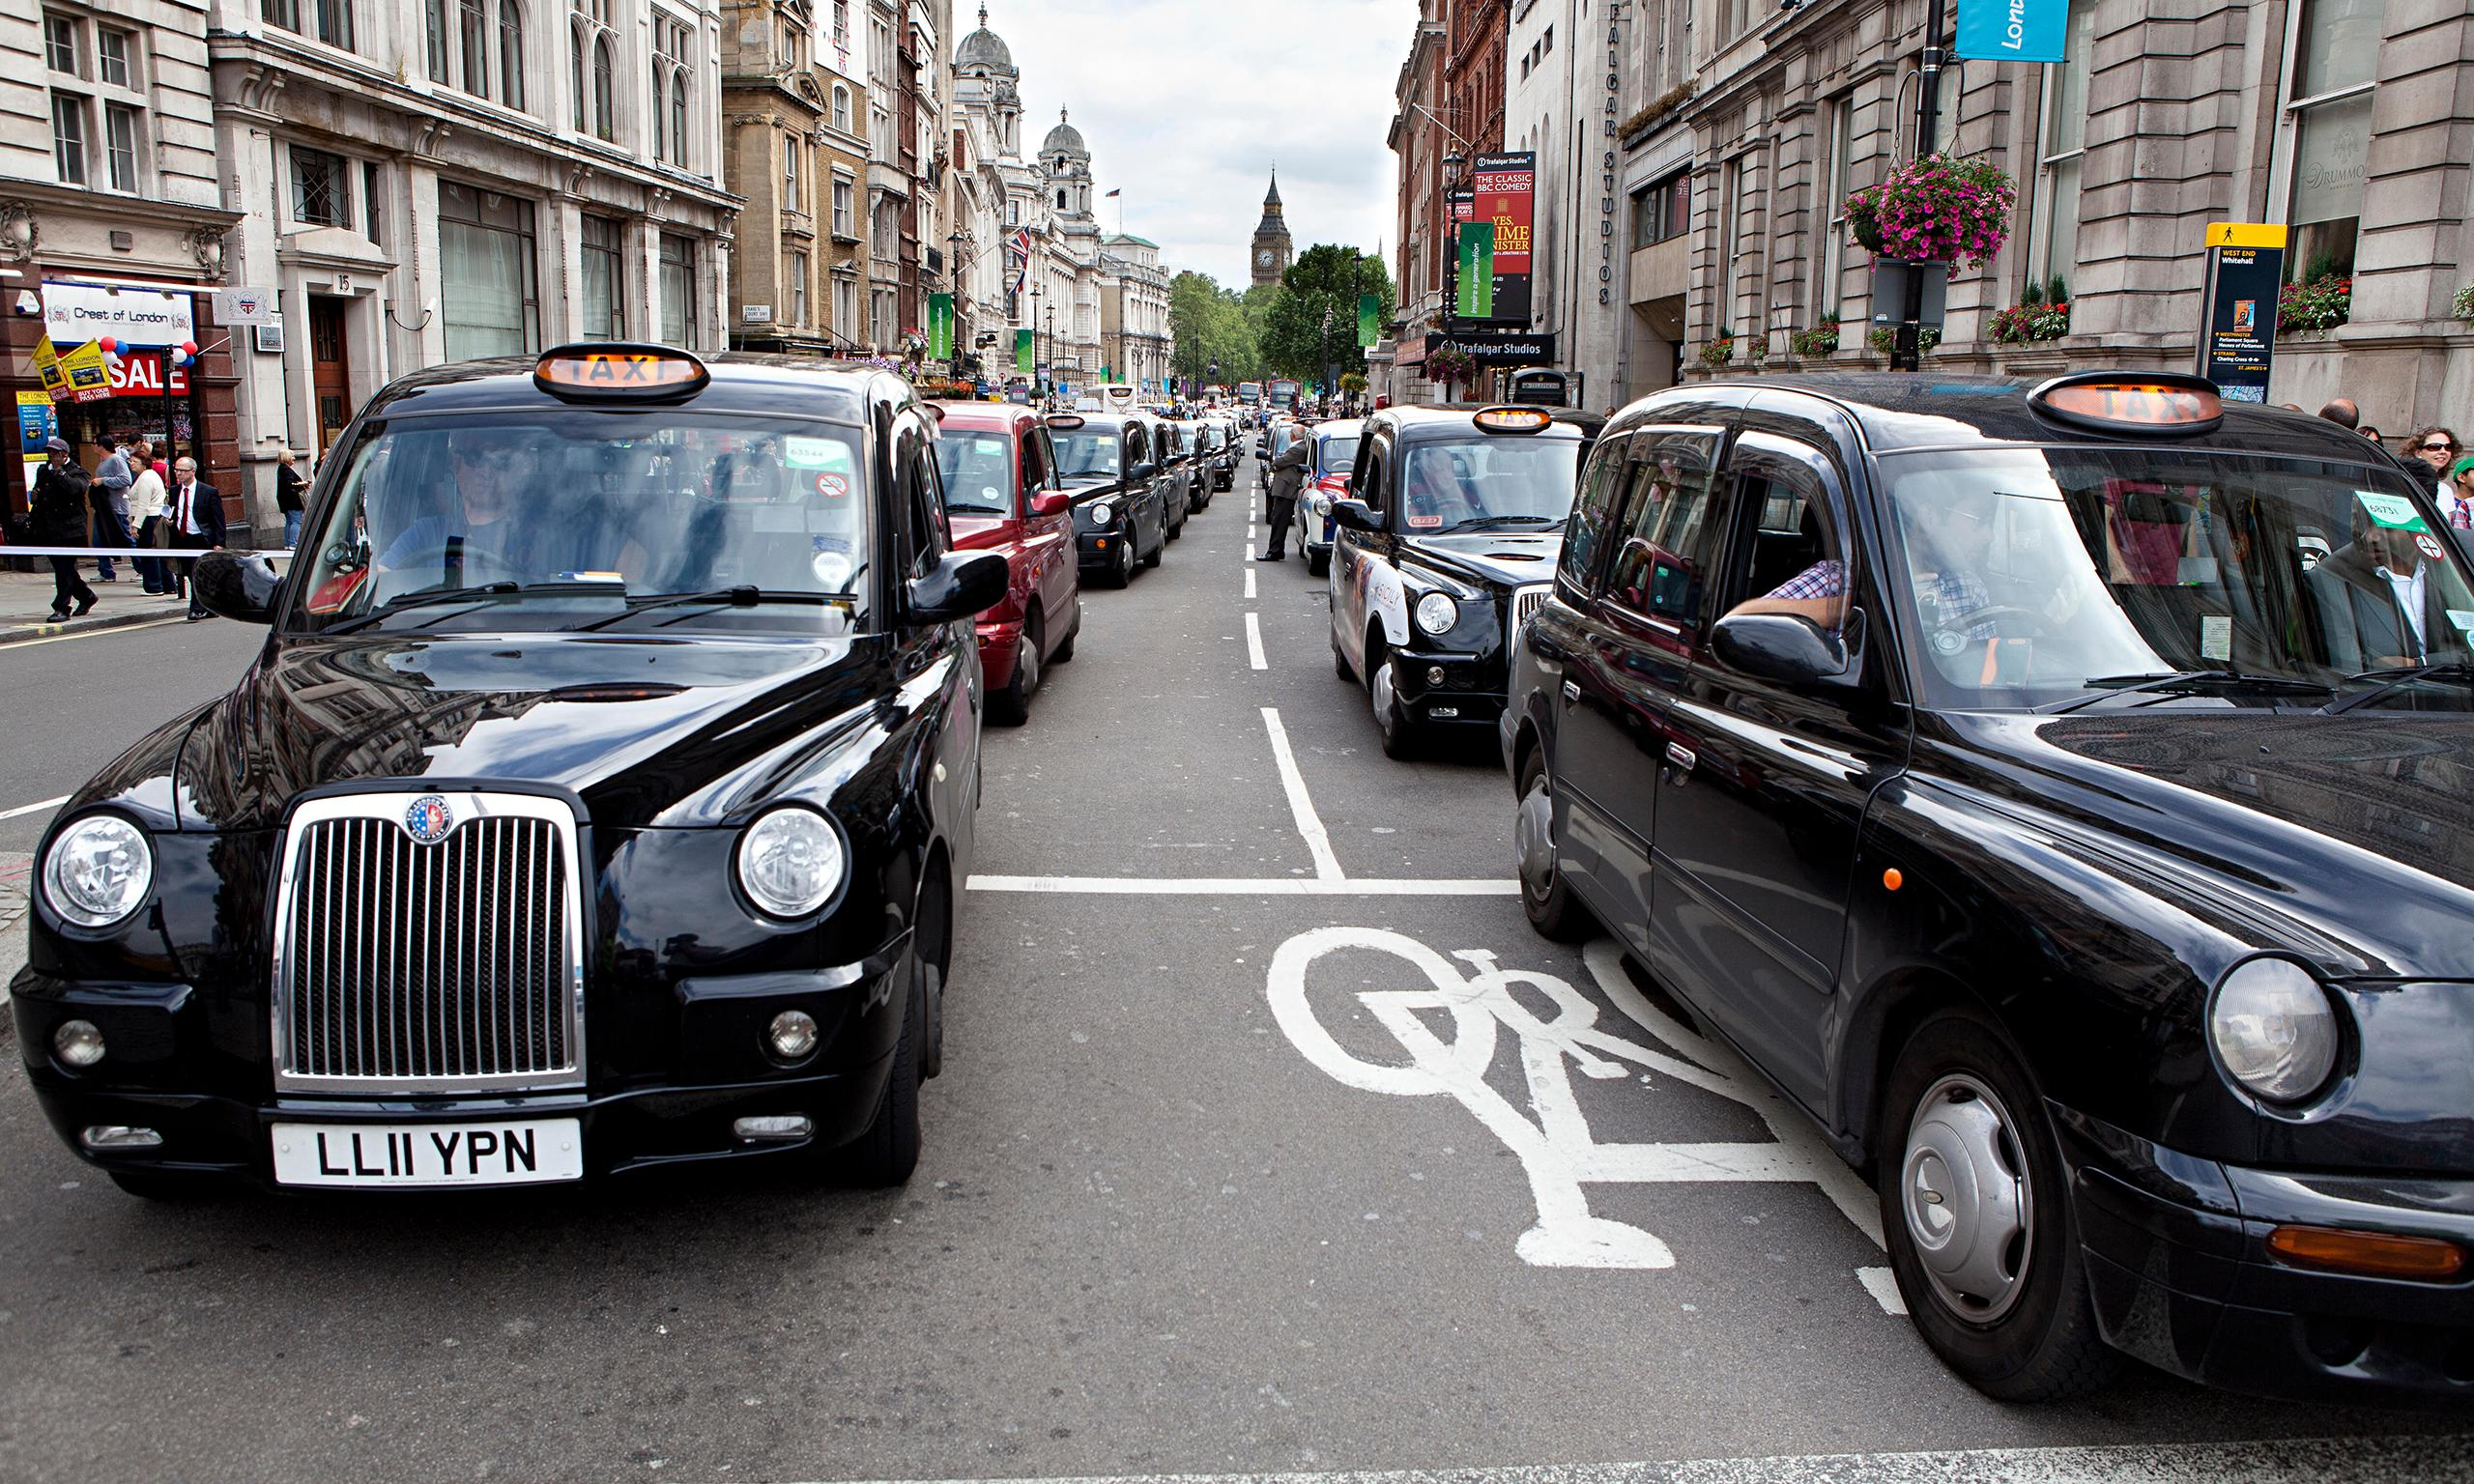 Black Cabs In London 014 Uber The Smartphone App That Is Driving Cabbies To